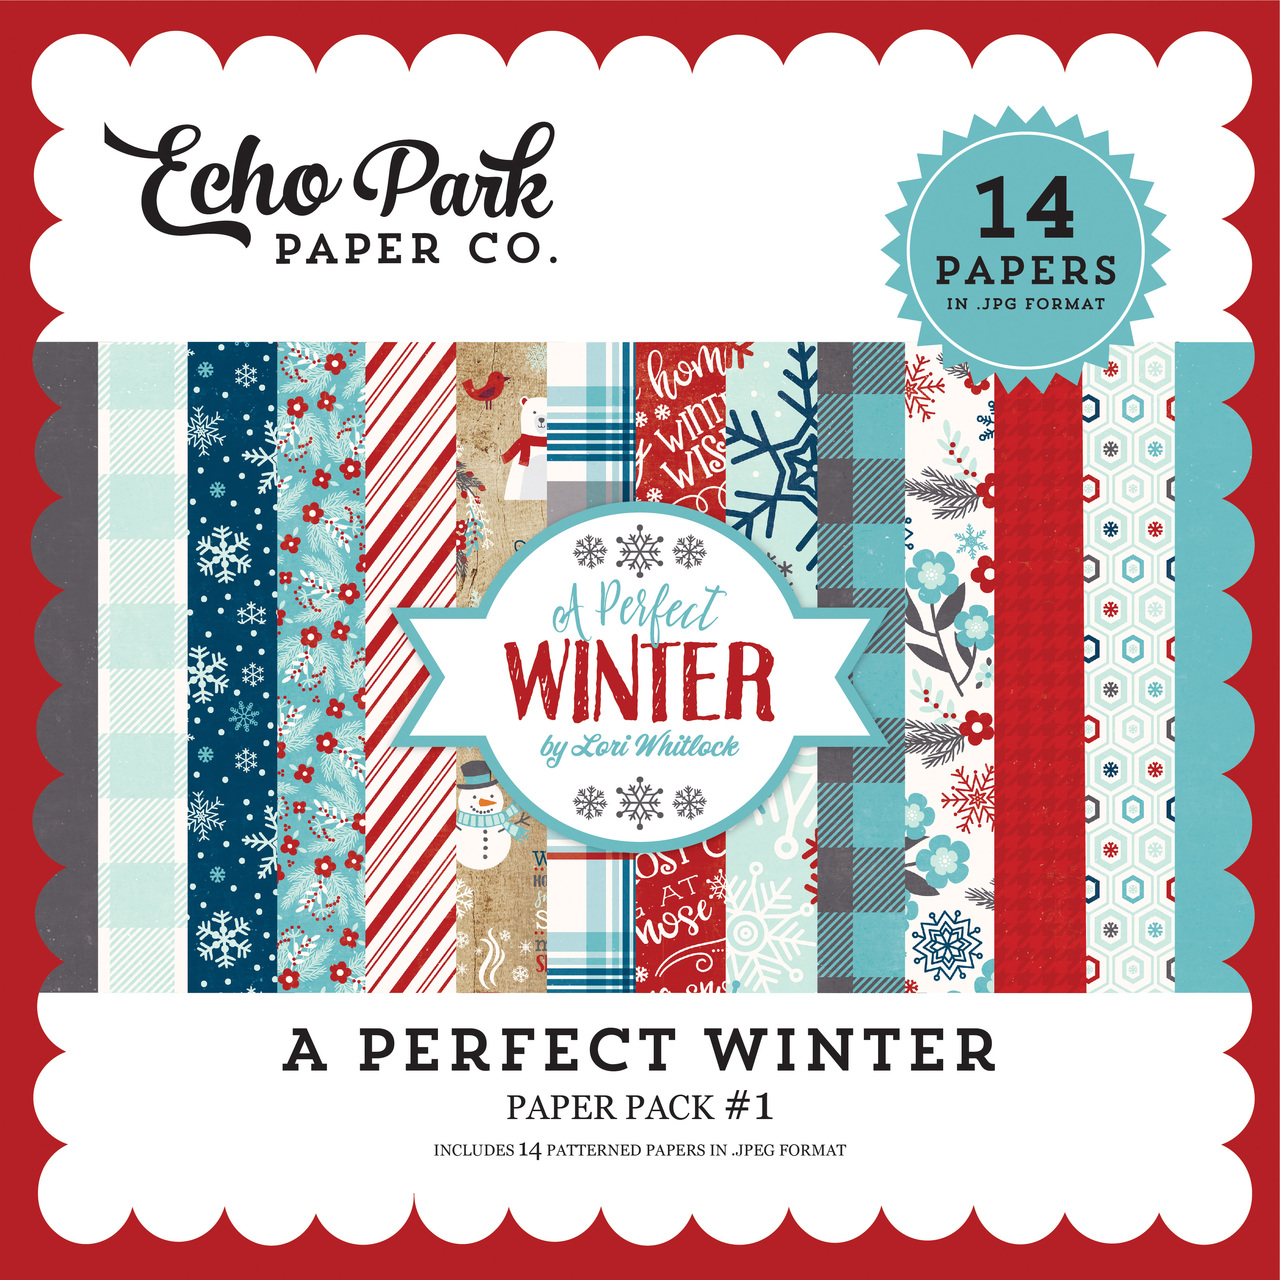 A Perfect Winter Paper Pack #1